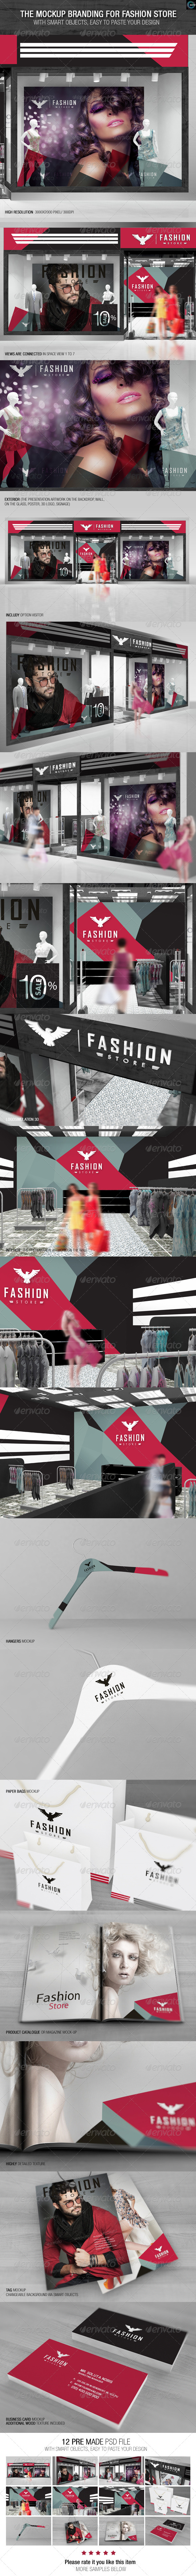 GraphicRiver The Mockup Branding for Fashion Store 7822738